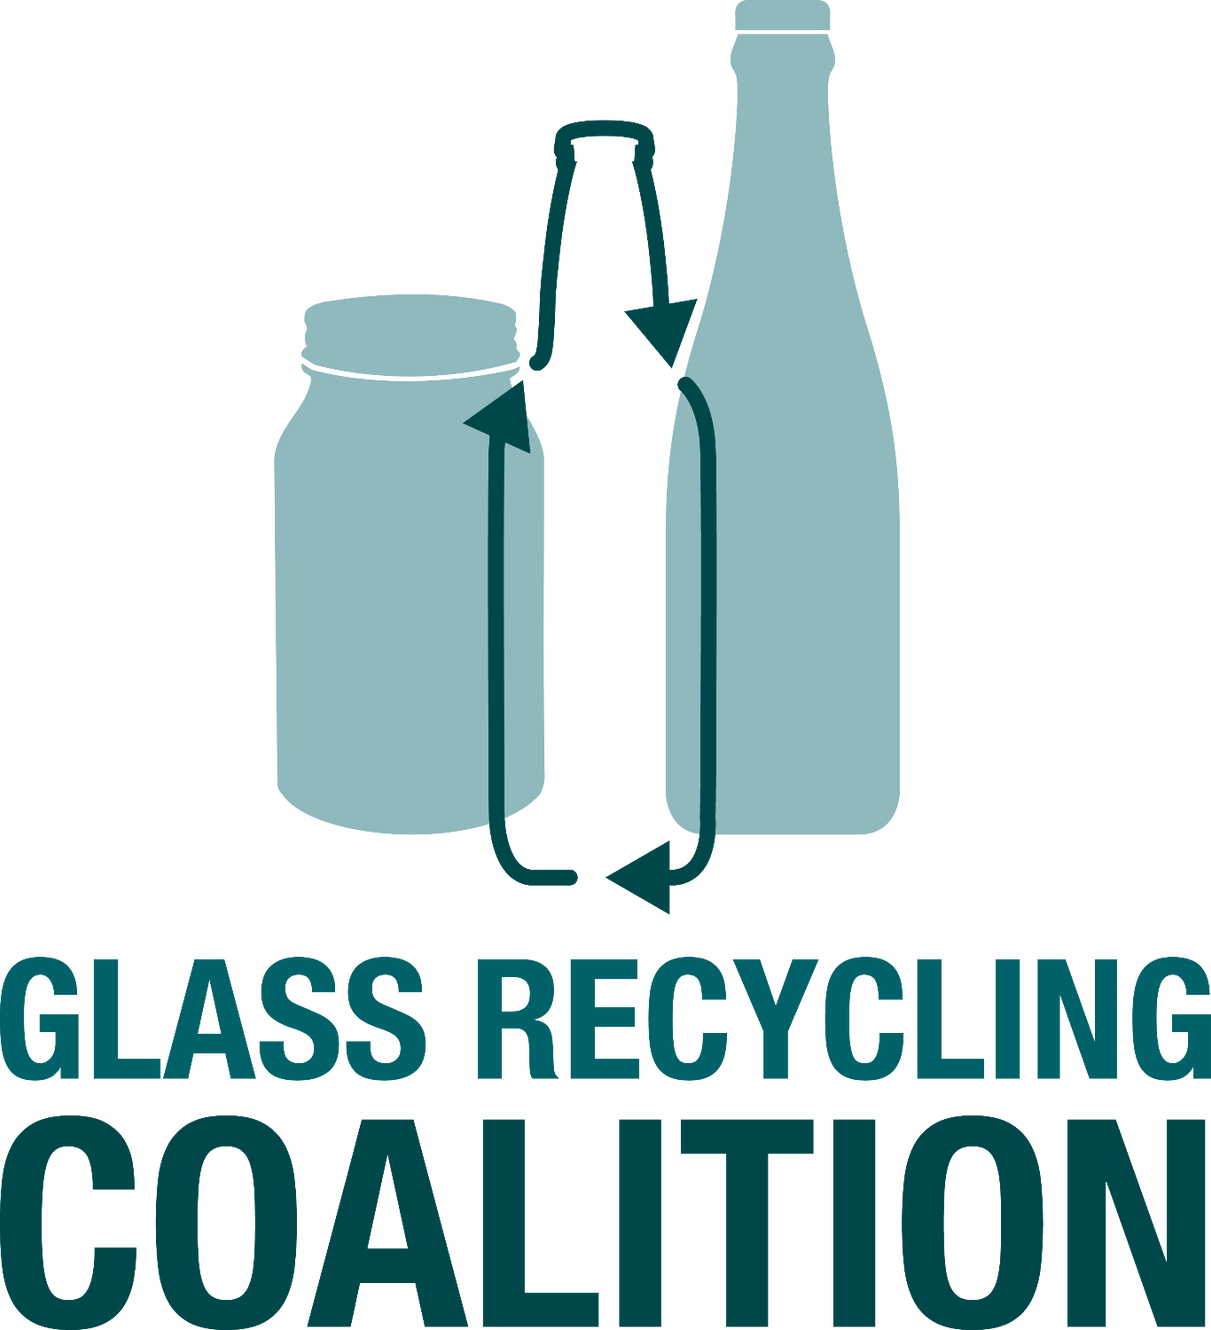 glassrecycling